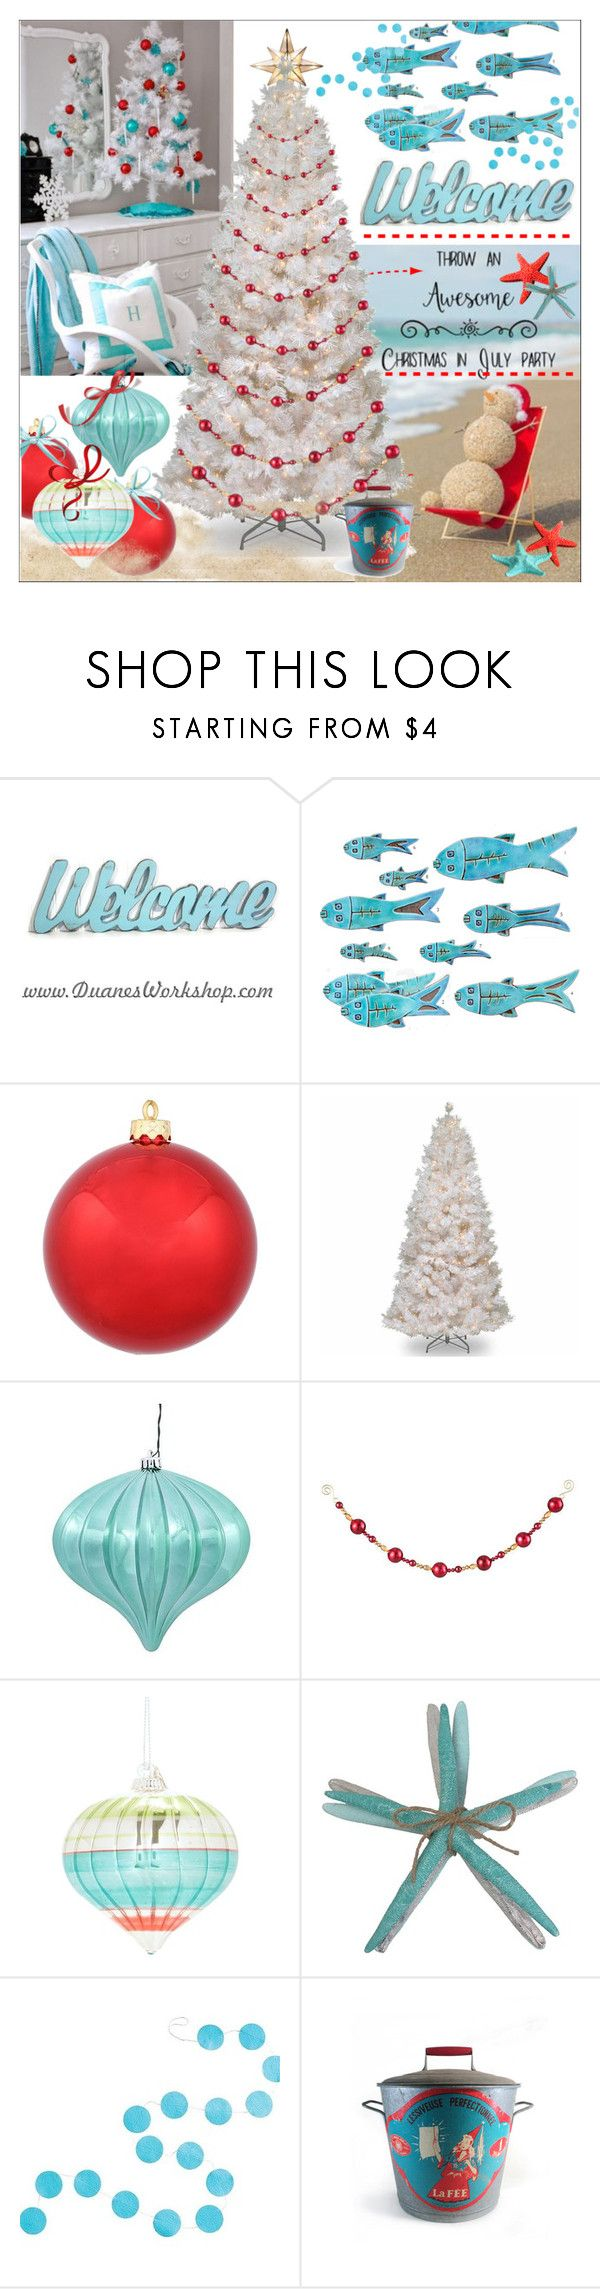 """Christmas in July!"" by calamity-jane-always ❤ liked on Polyvore featuring interior, interiors, interior design, home, home decor, interior decorating, National Tree Company, Improvements, Lord & Taylor and SONOMA Goods for Life"